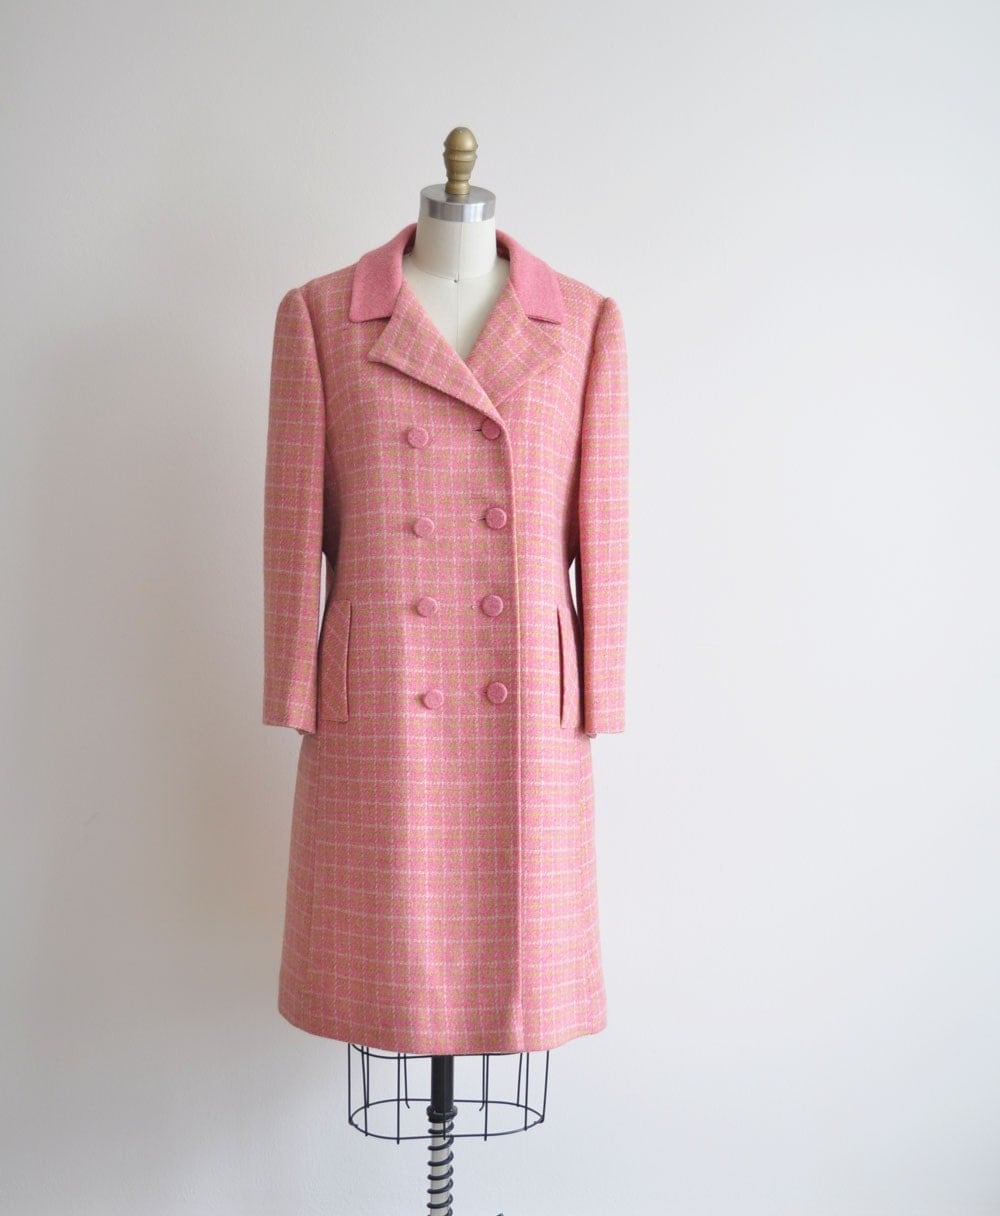 RESERVEDVintage 60s PINK PLAID Winter Coat by MariesVintage from etsy.com